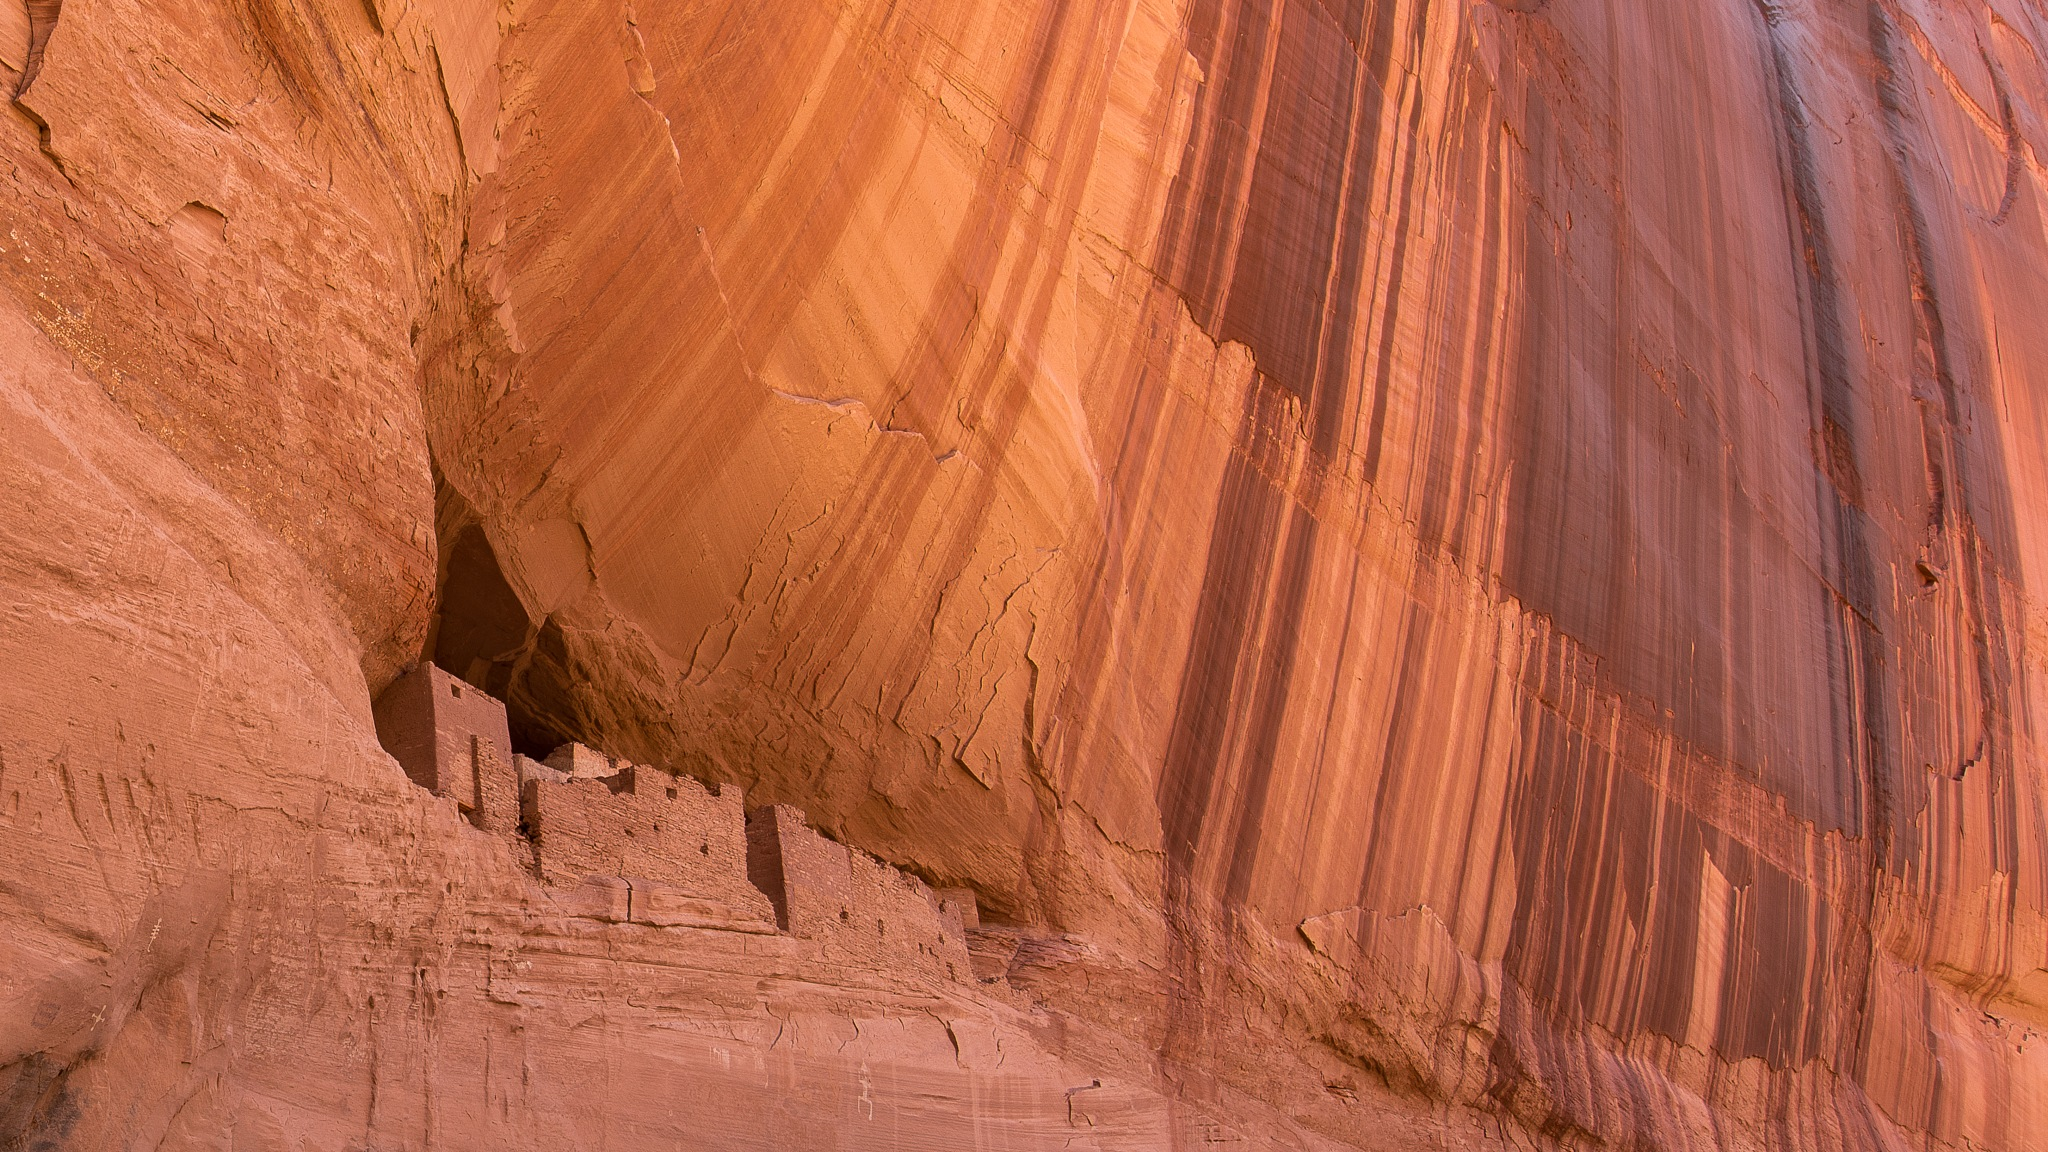 Canyon De Chelly Canyon Wall and Ruins by Steve Aicinena